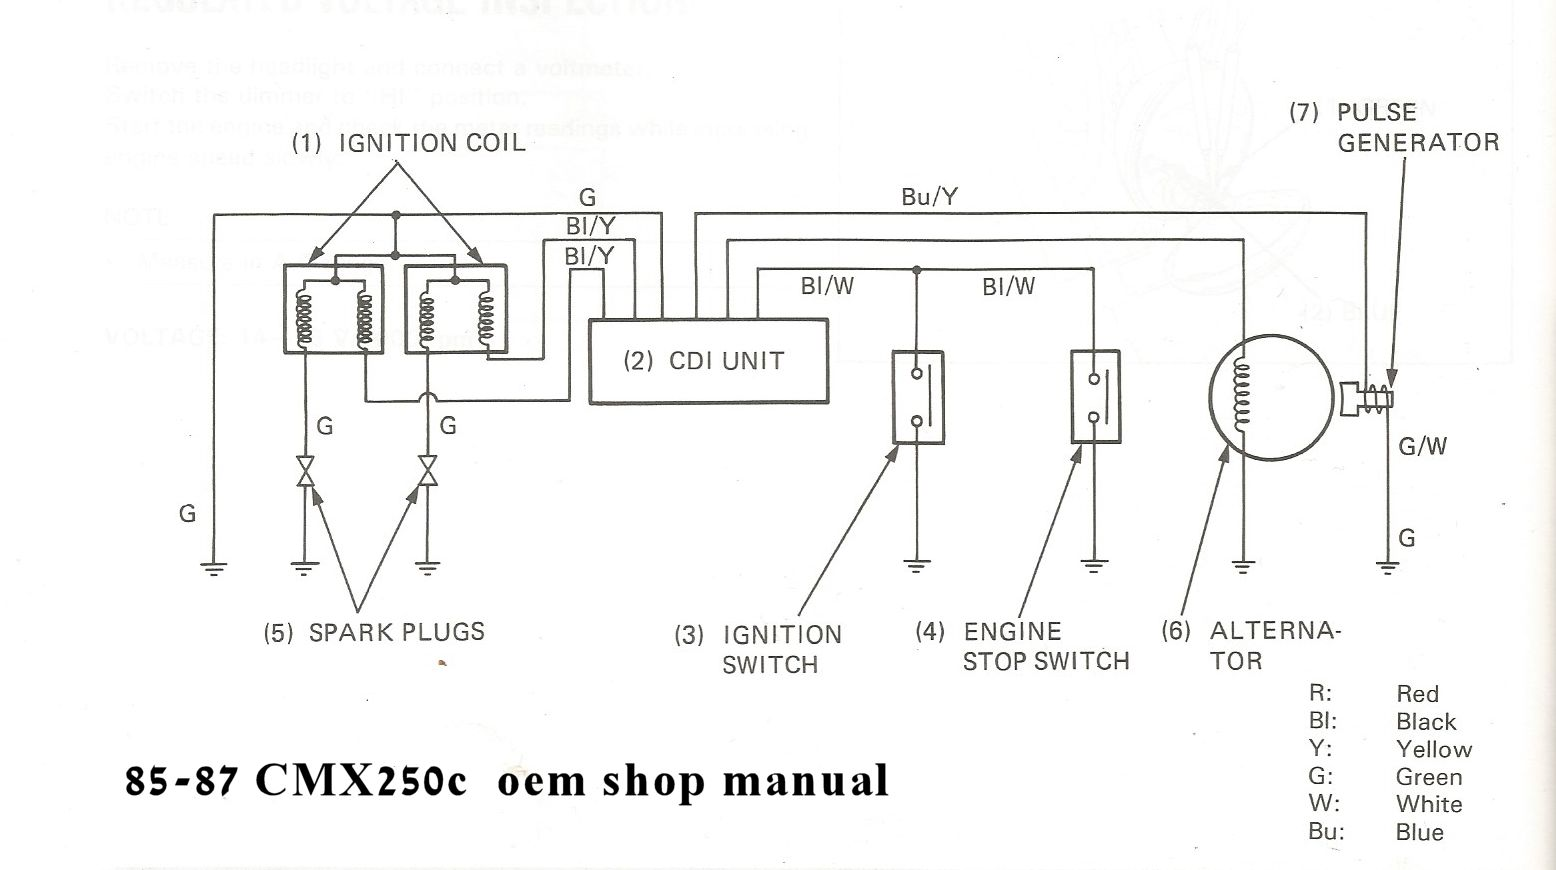 Ignition Coil Wiring | Honda Rebel Forum | Rebel 450 Wiring Diagram |  | Honda Rebel Forum